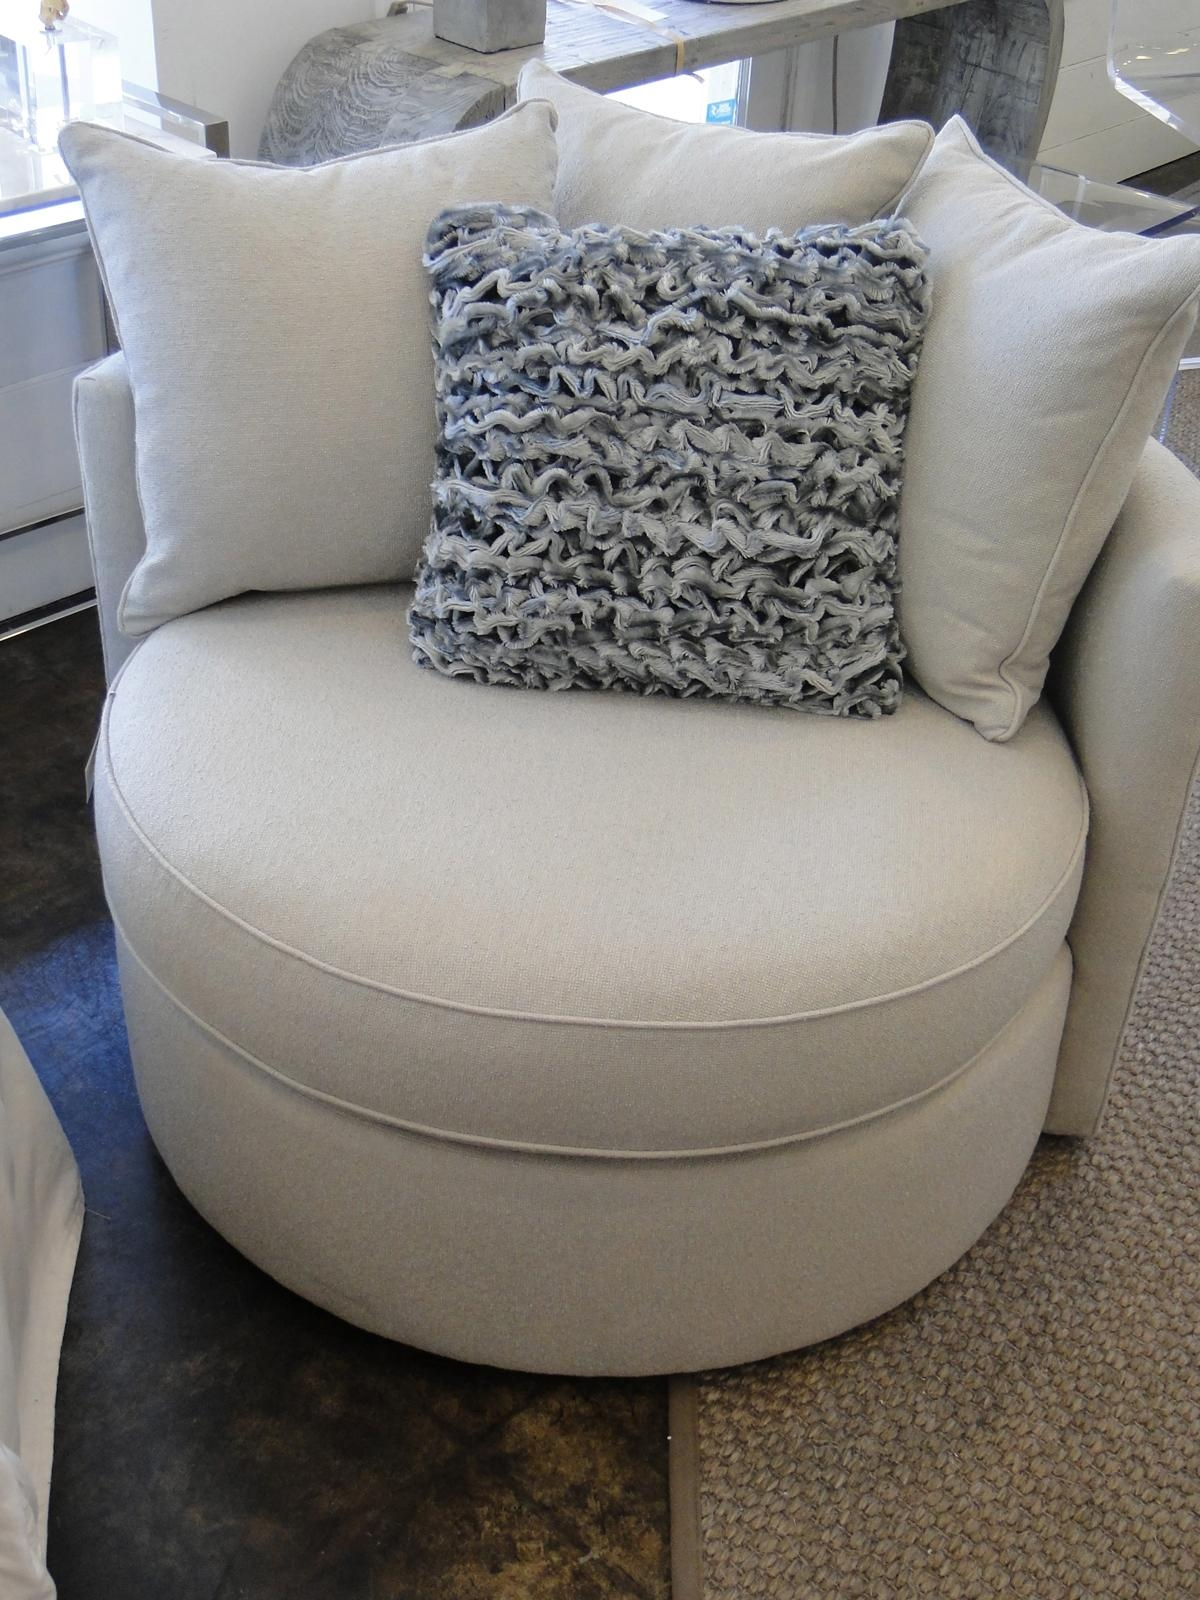 Round Sofa Chair 20 Inspirations Round Swivel Sofa Chairs Sofa Ideas